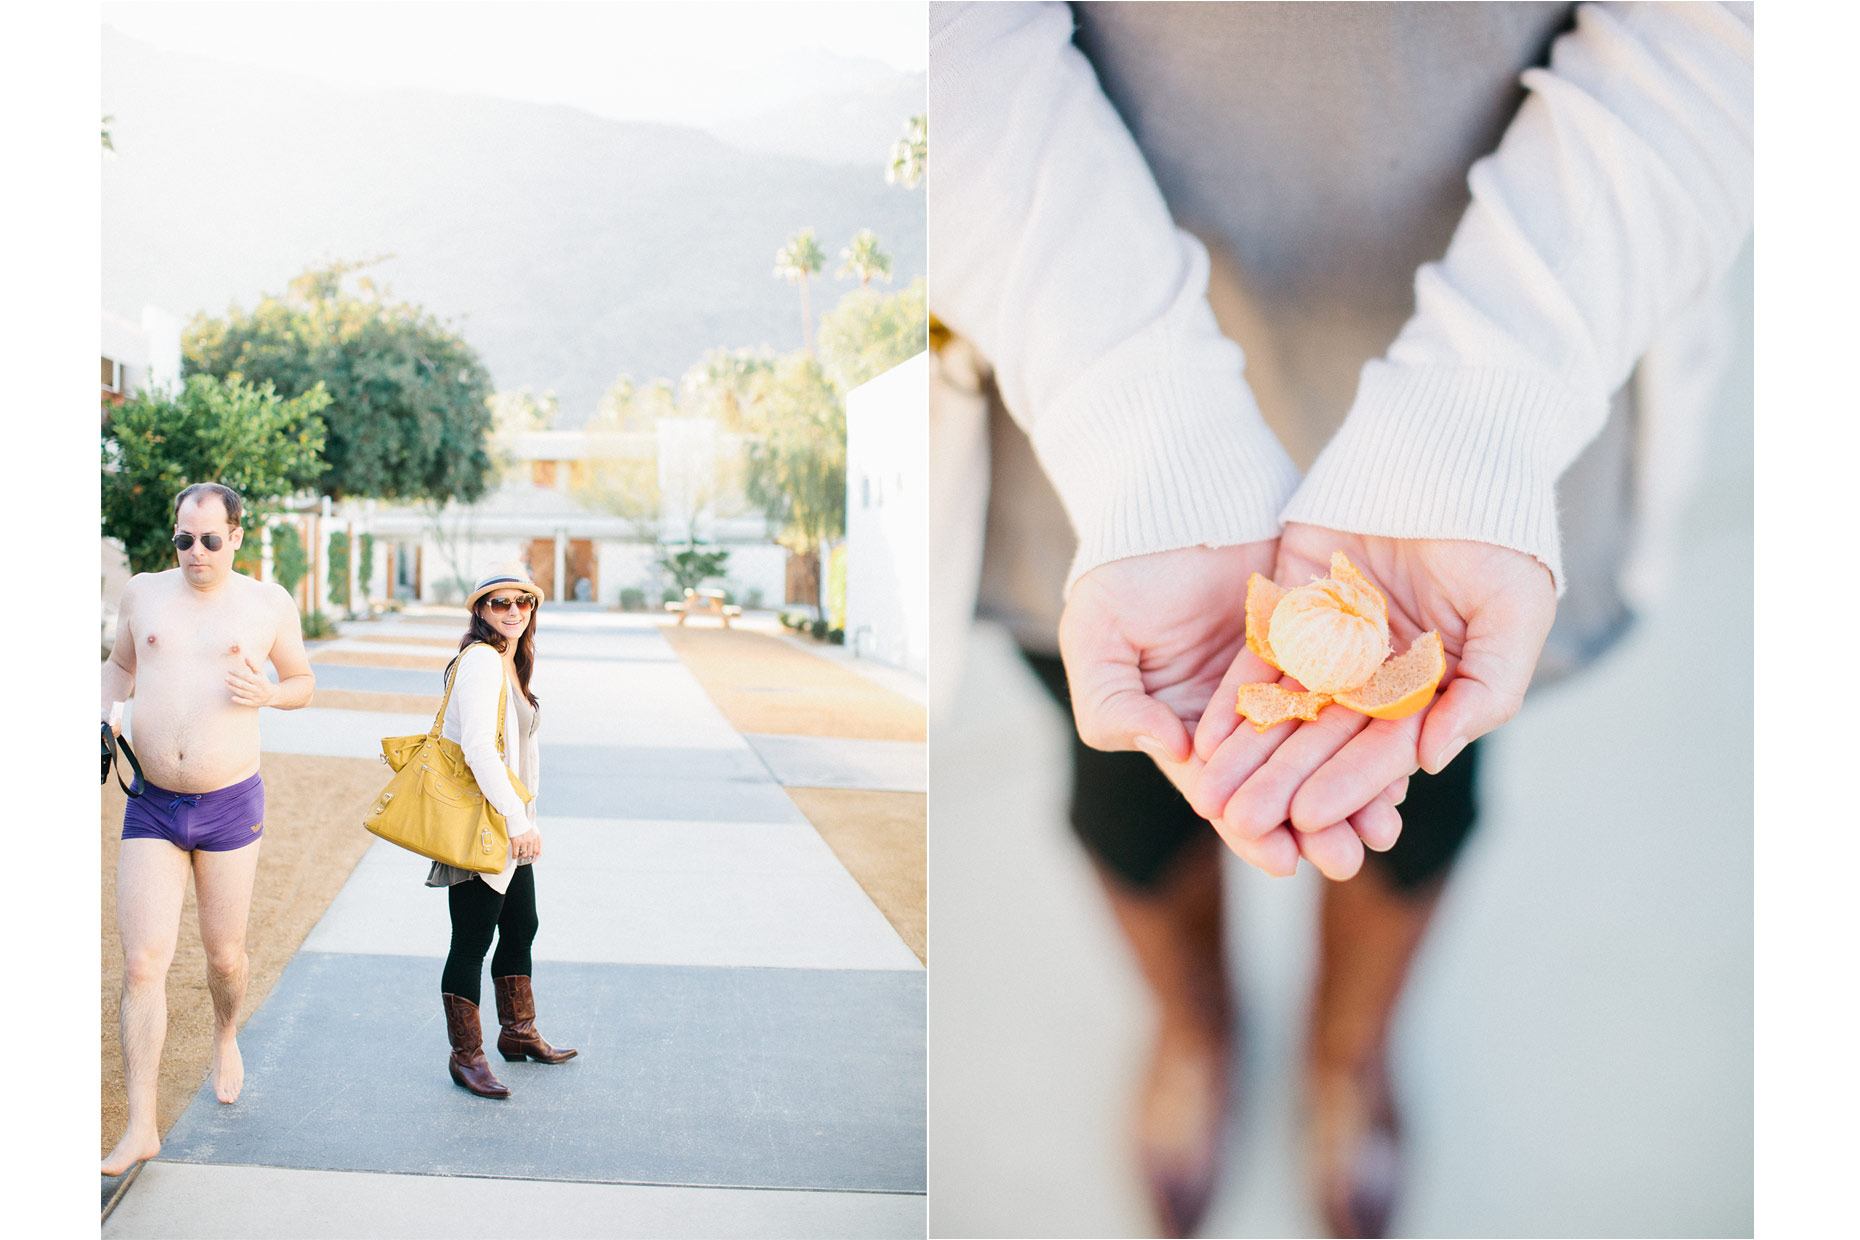 Ace Hotel palm spring wedding photographer editorial wedding photographers modern at parker hotel palm springs